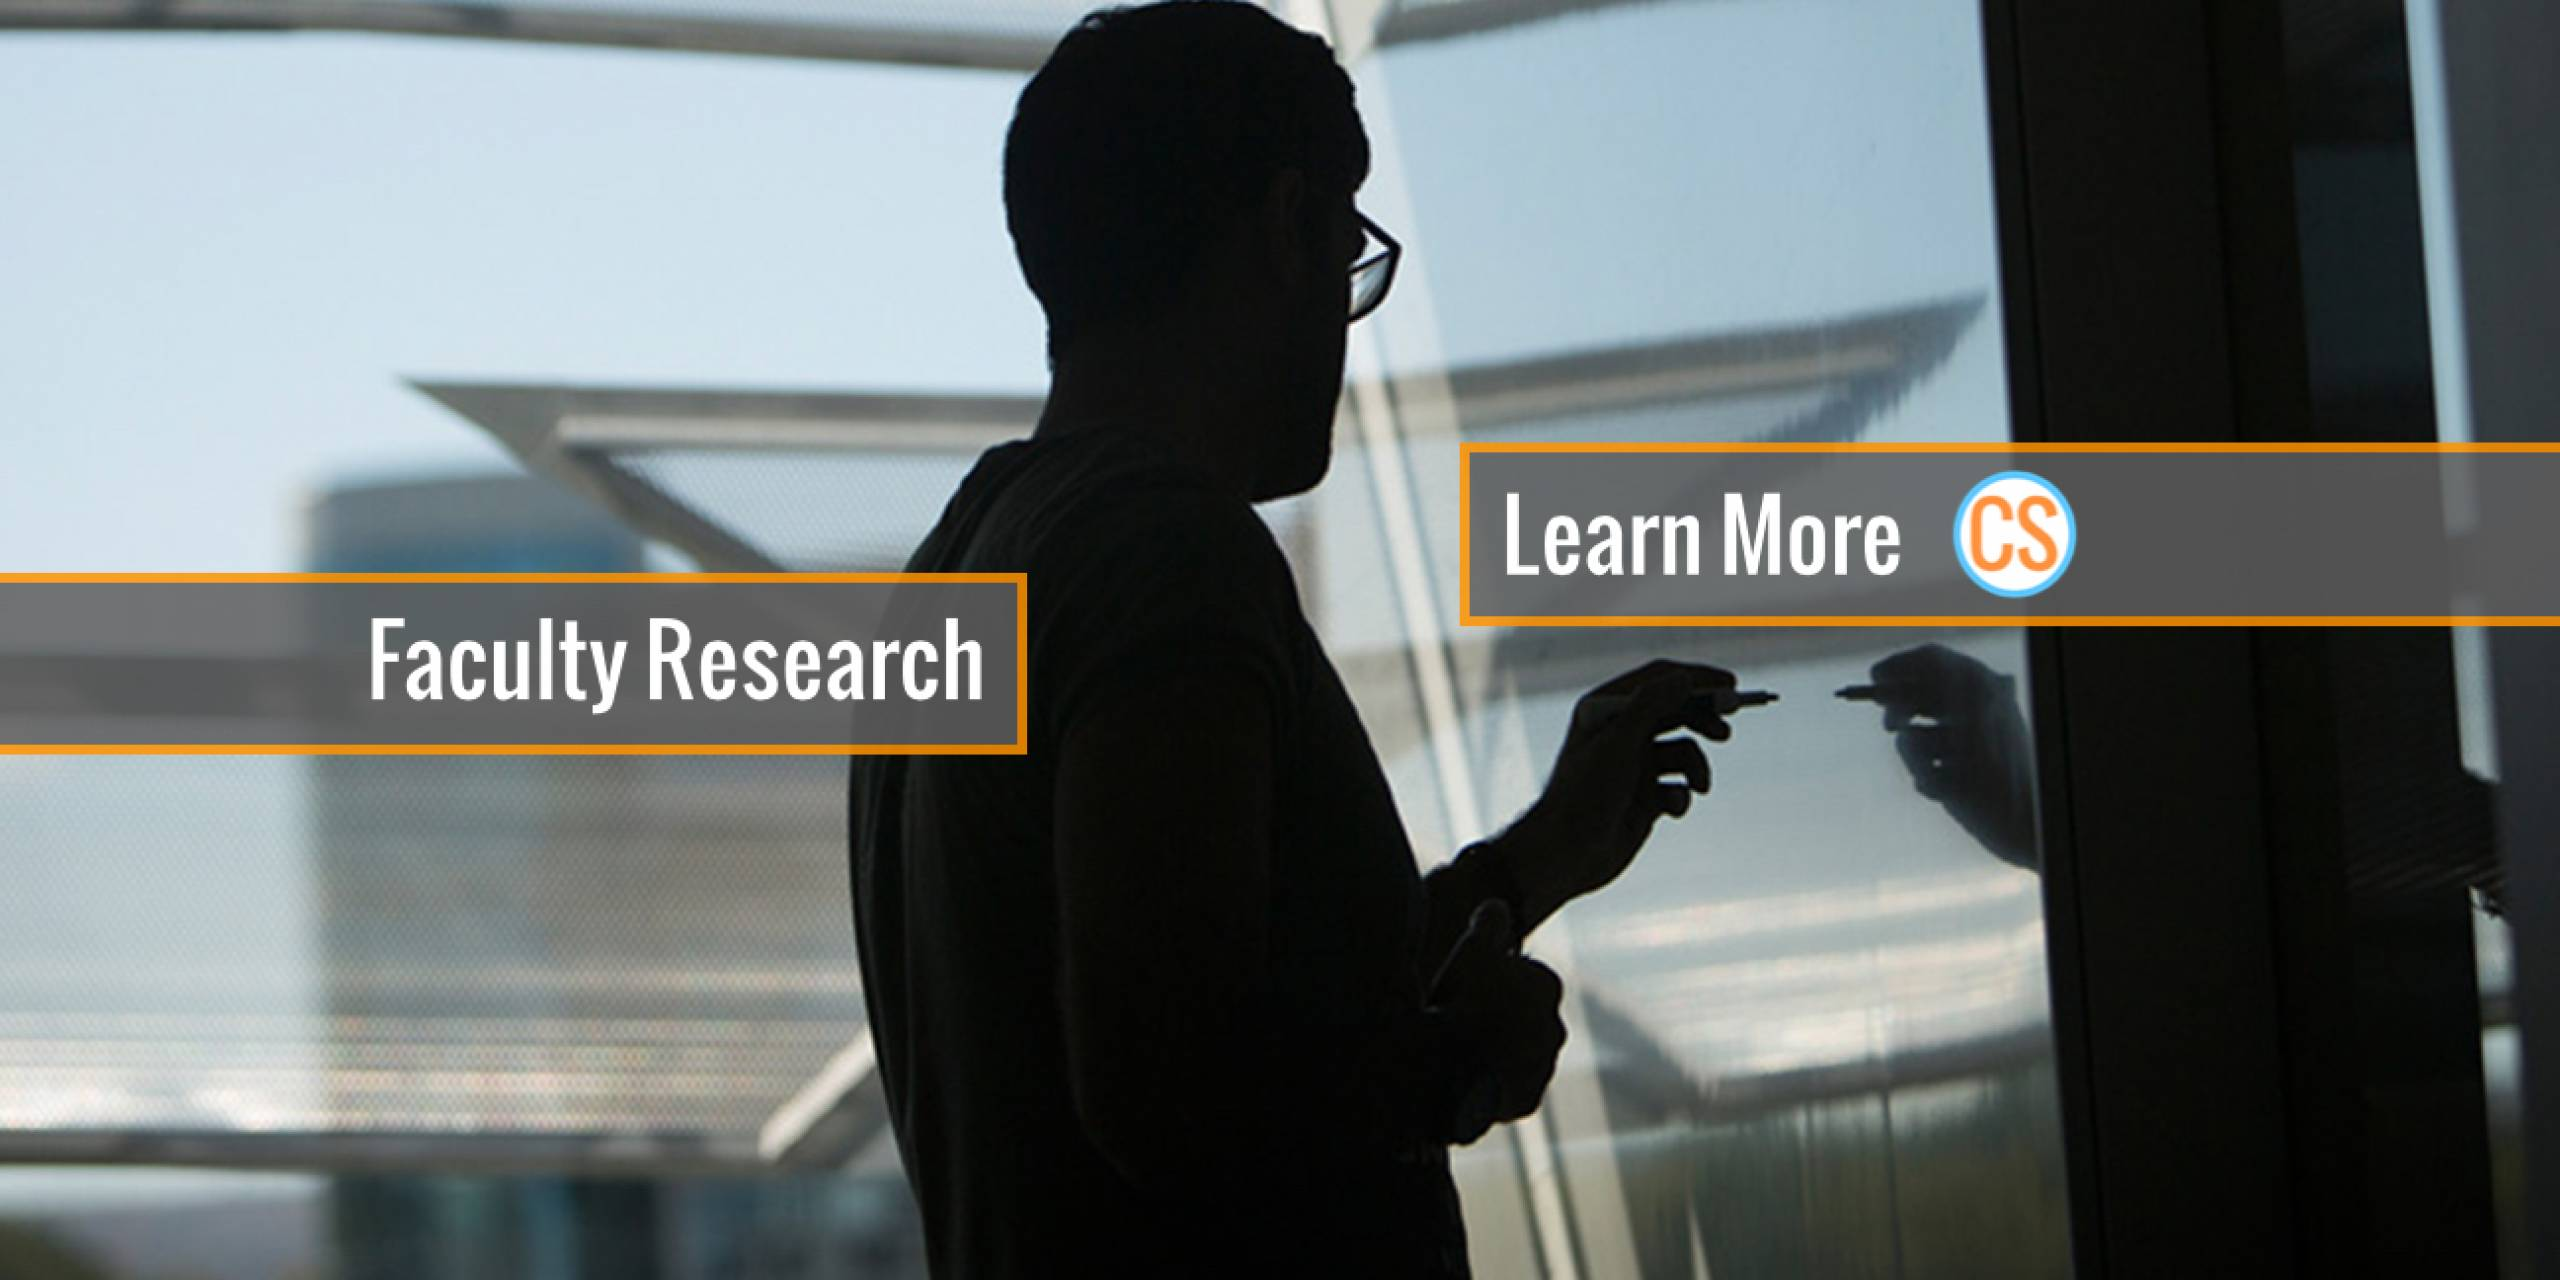 Learn More about Faculty Research